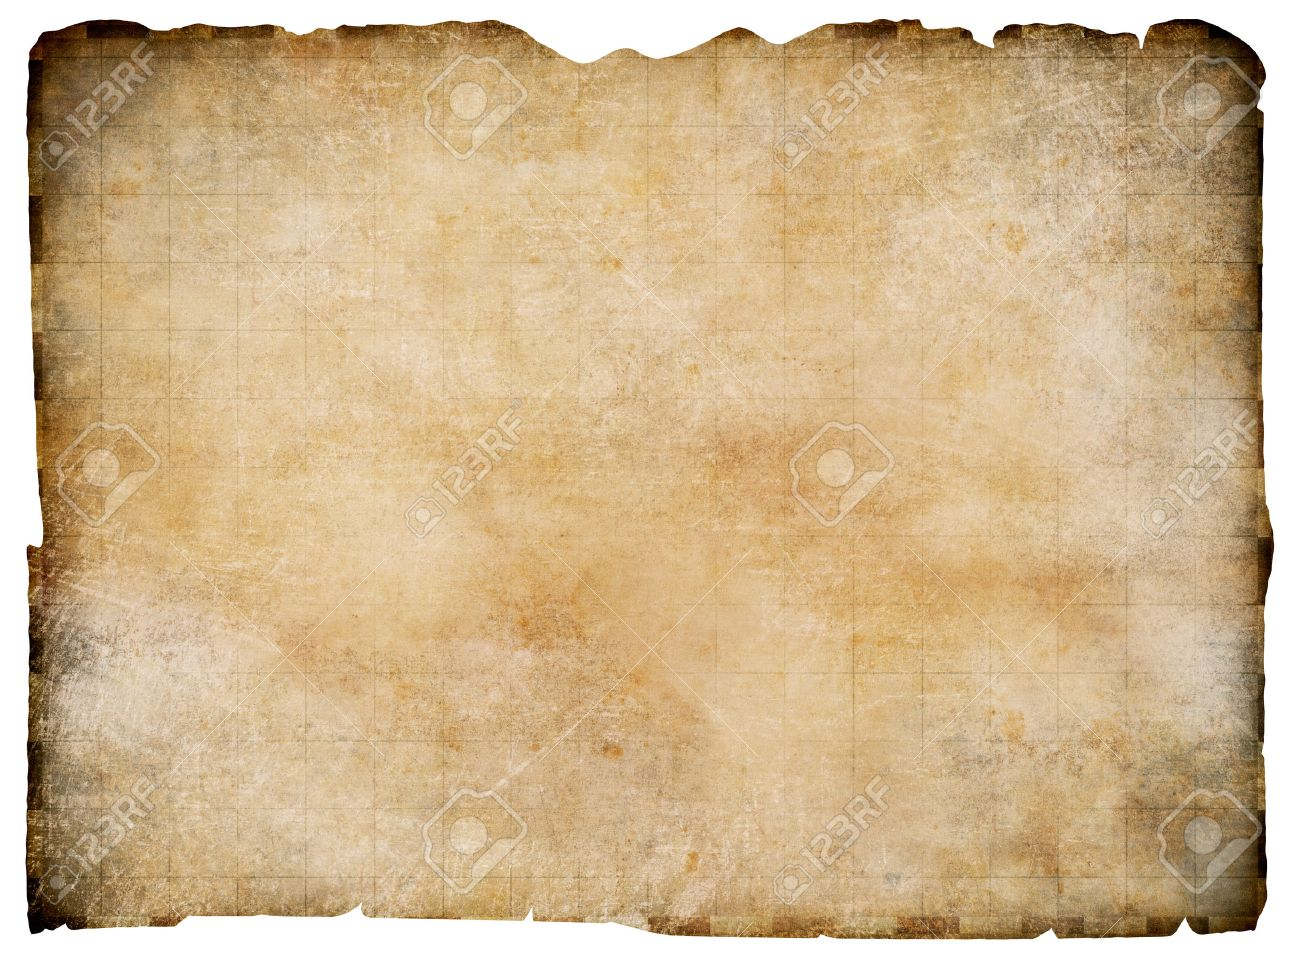 Old Blank Parchment Treasure Map Isolated Clipping Path Is Included Stock Photo